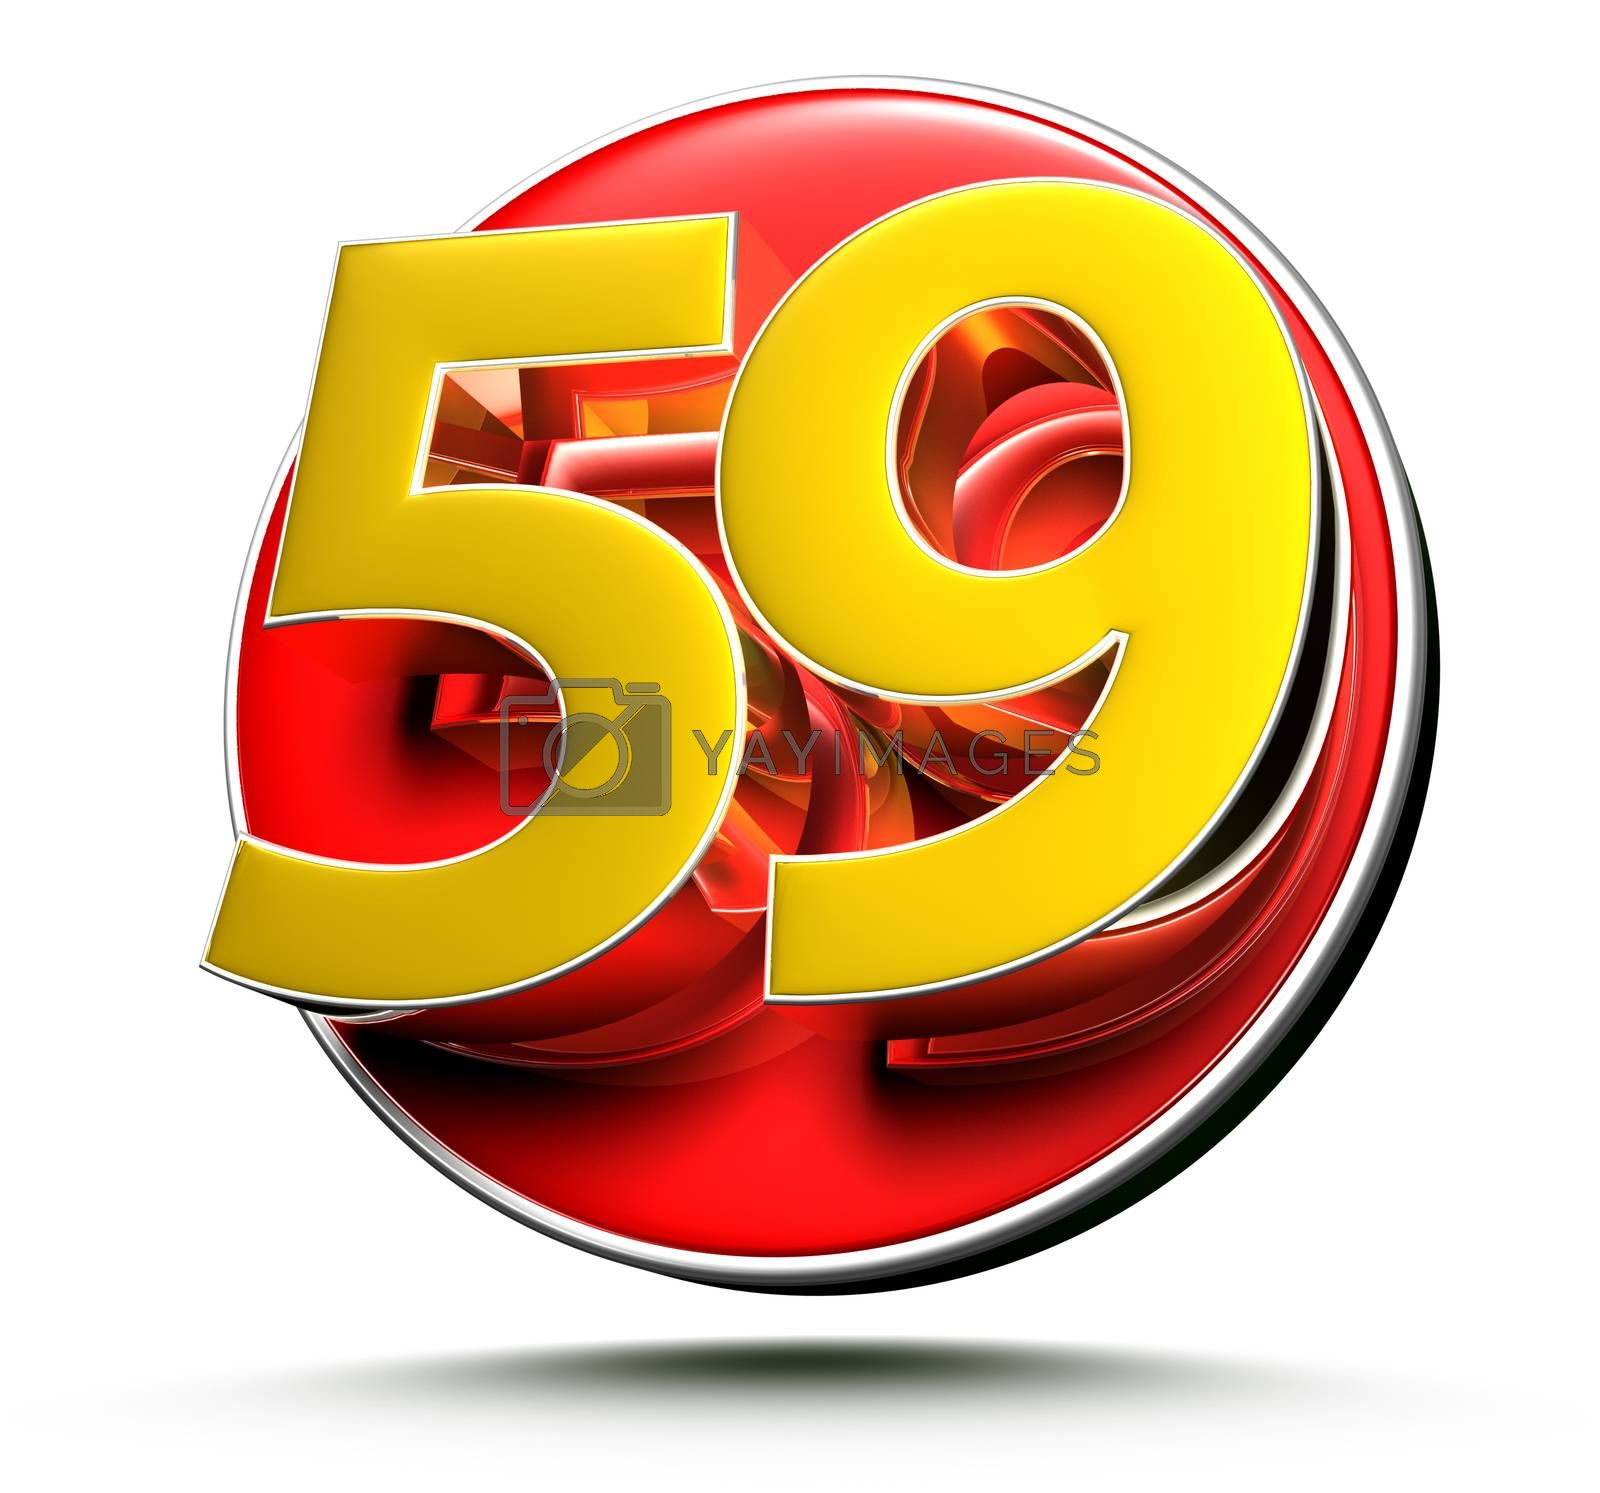 3D illustration Golden number 59 isolated on a white background.(with Clipping Path).